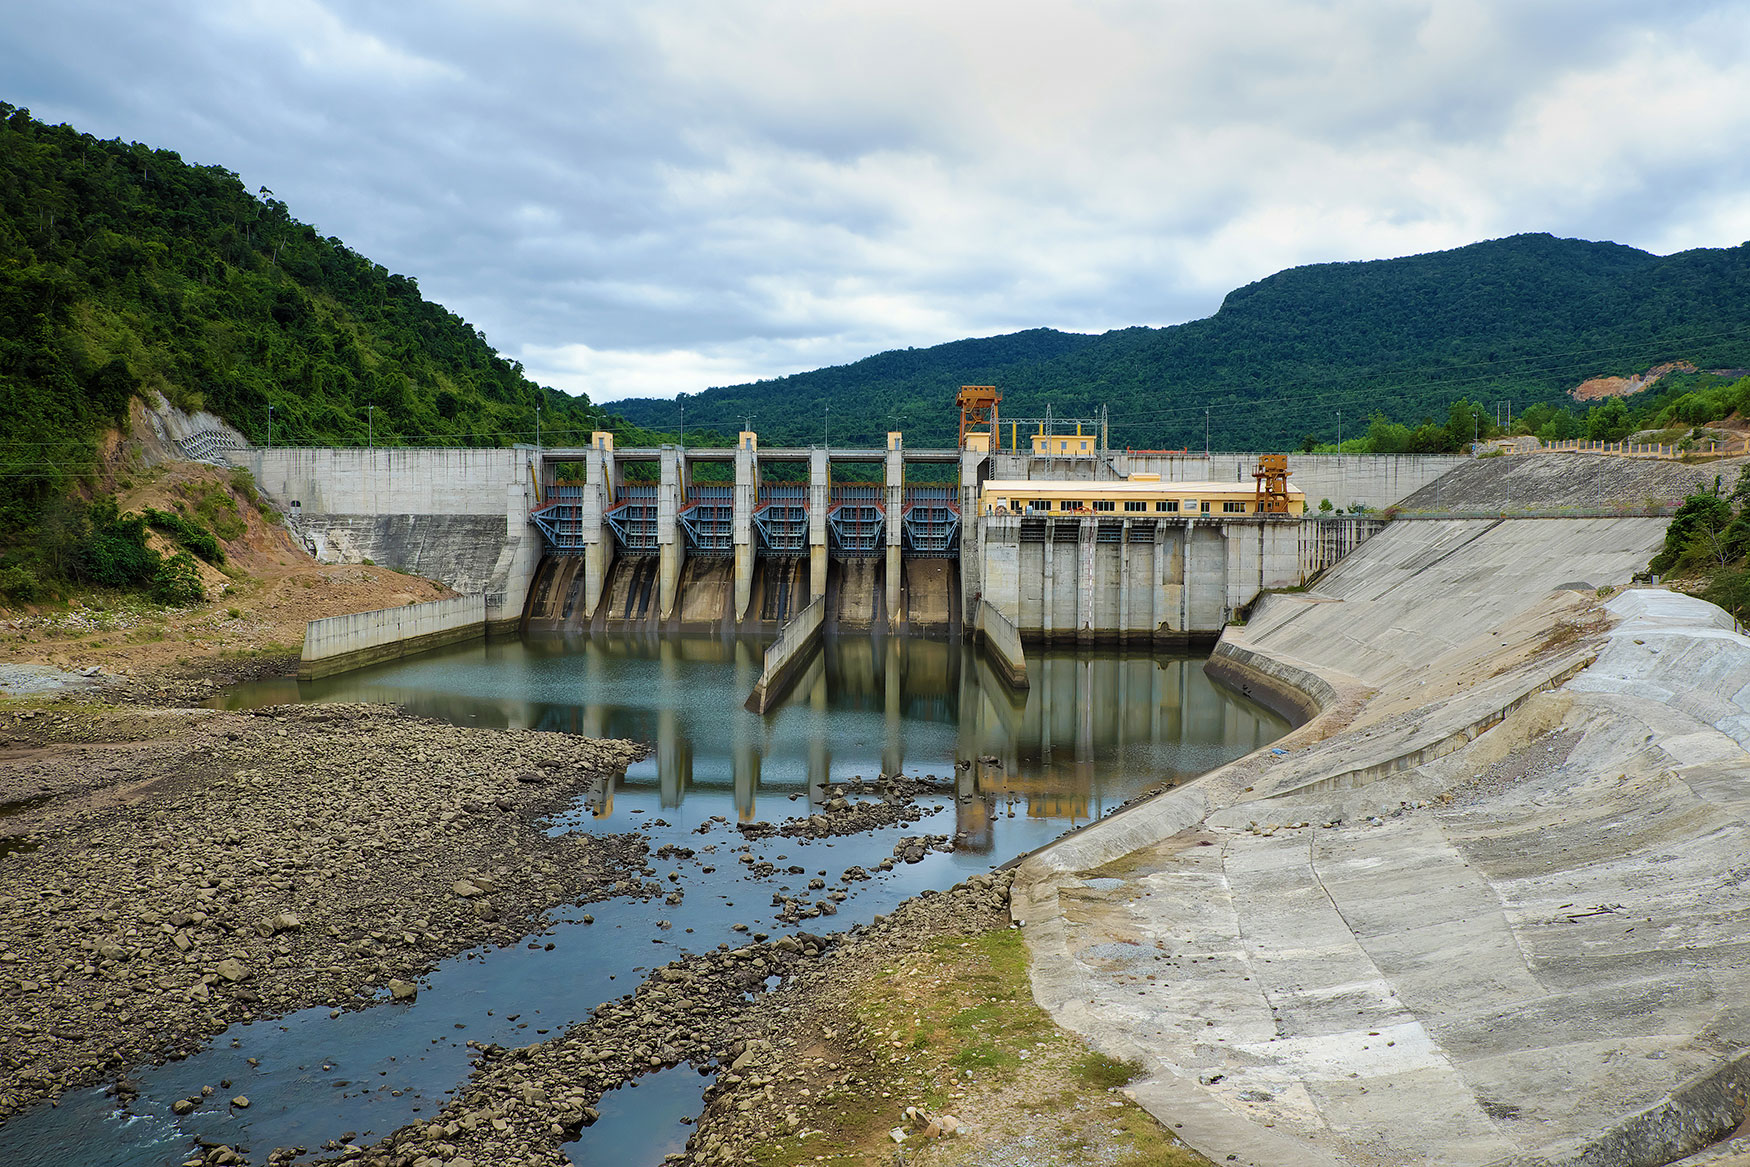 song-bung-hydroelectric-plant-l